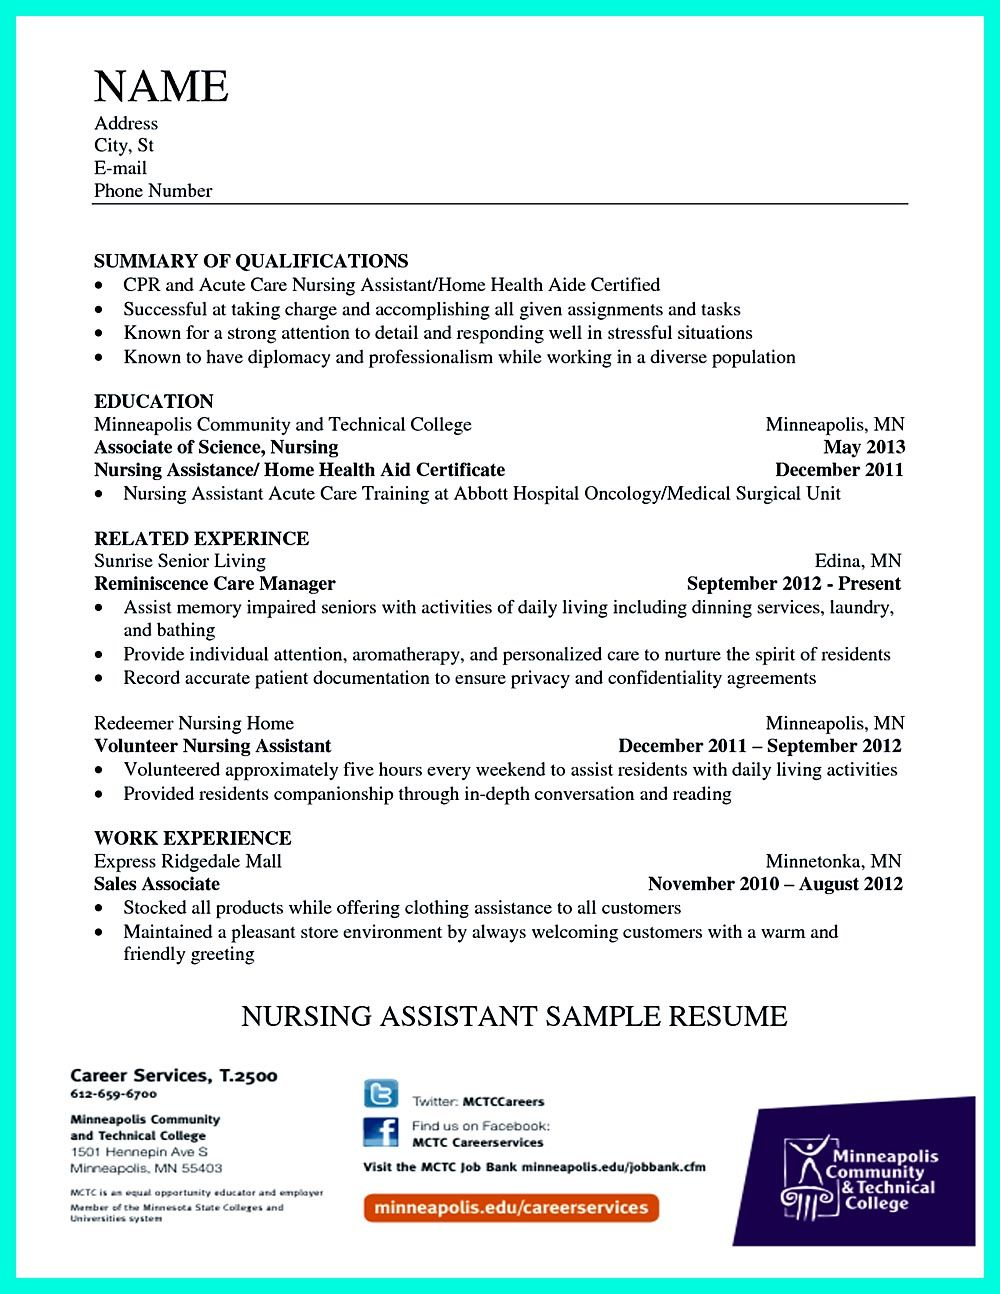 Writing Certified Nursing Assistant Resume Is Simple If You Follow These  Simple Tips. Some Highlights  Cna Resume Examples With Experience